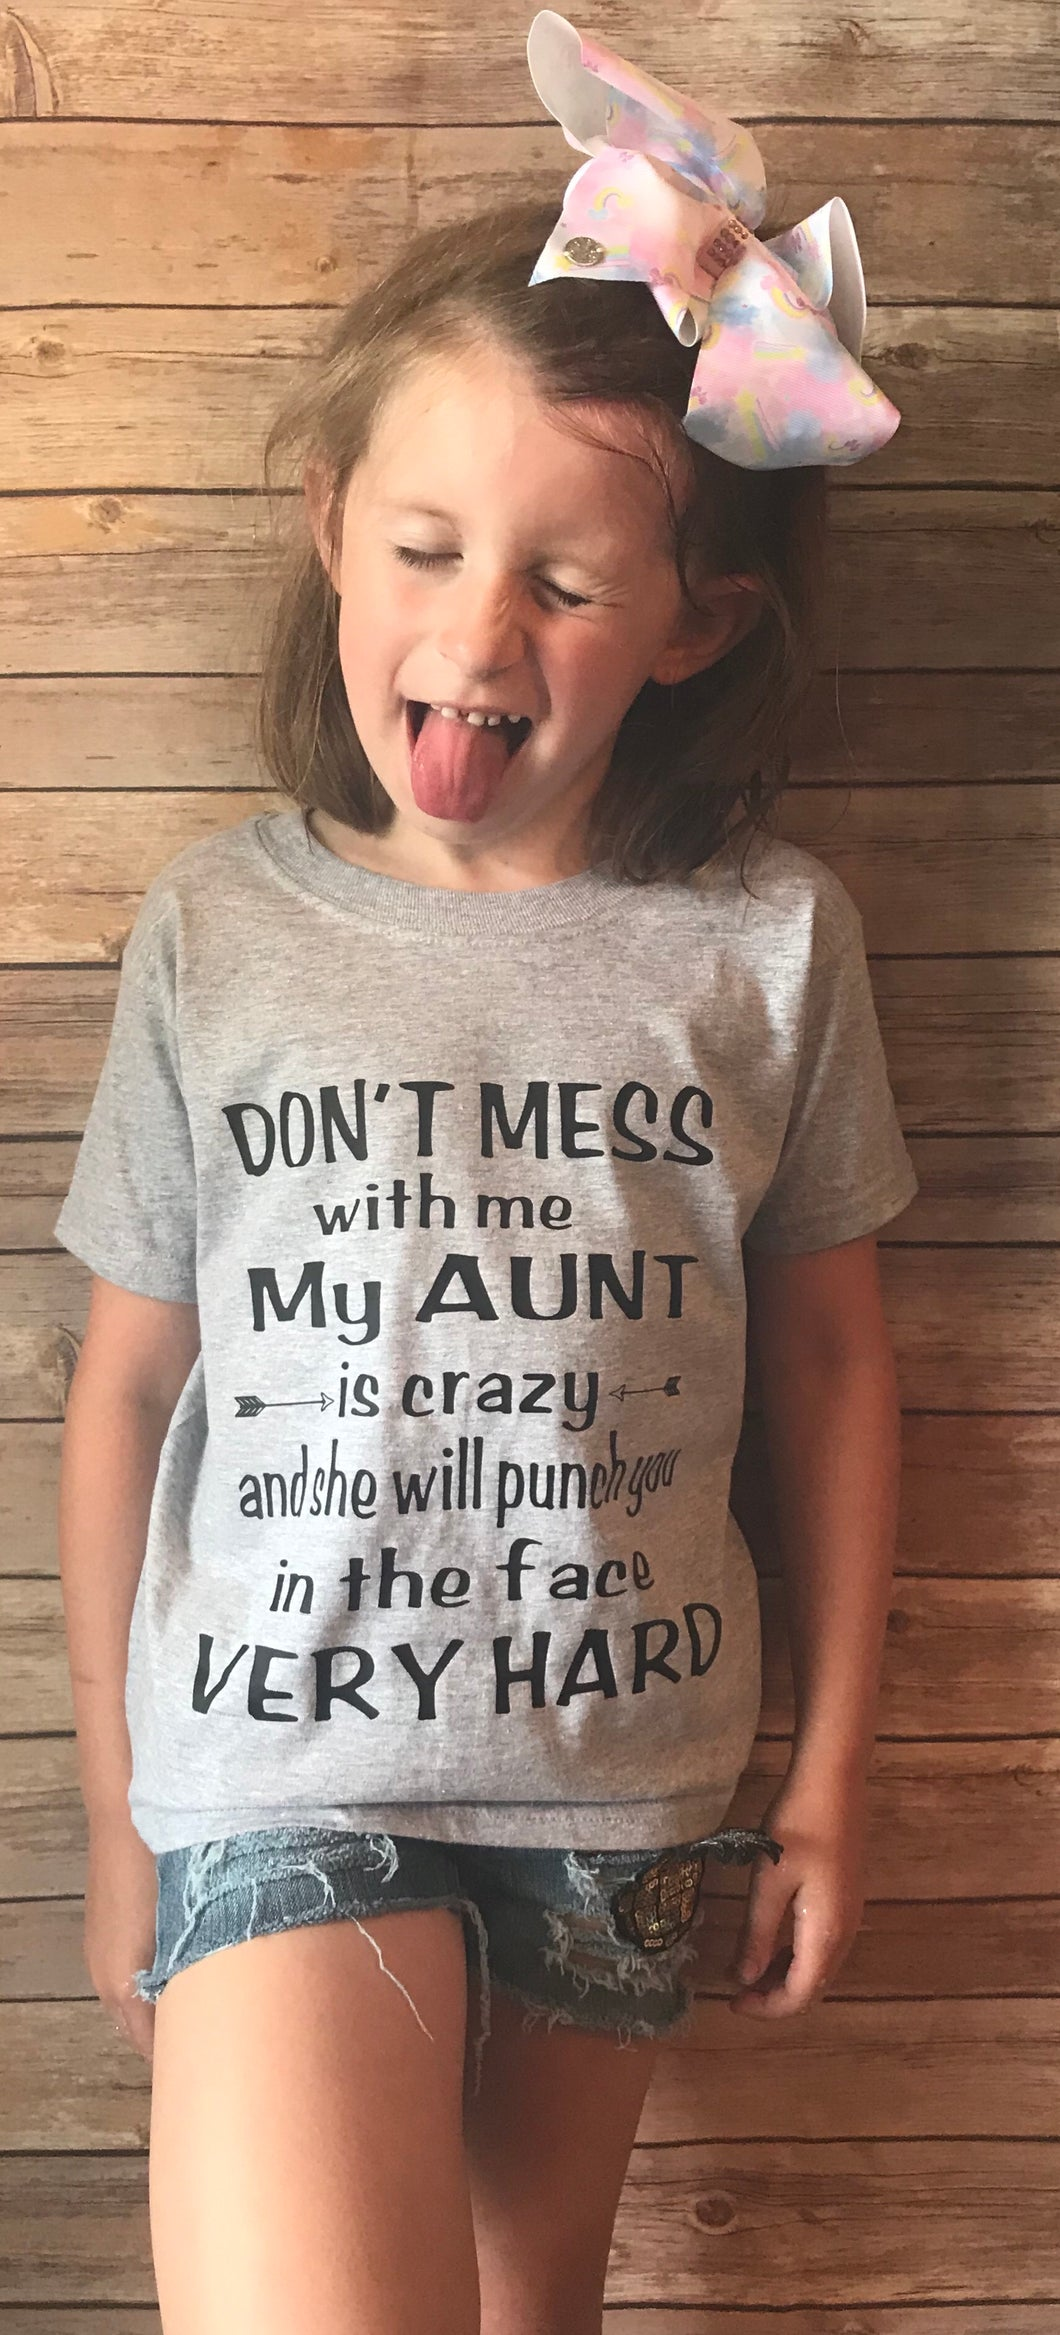 Don't mess with me my aunt is crazy and she will punch you in the face very hard funny graphic tee - Mavictoria Designs Hot Press Express